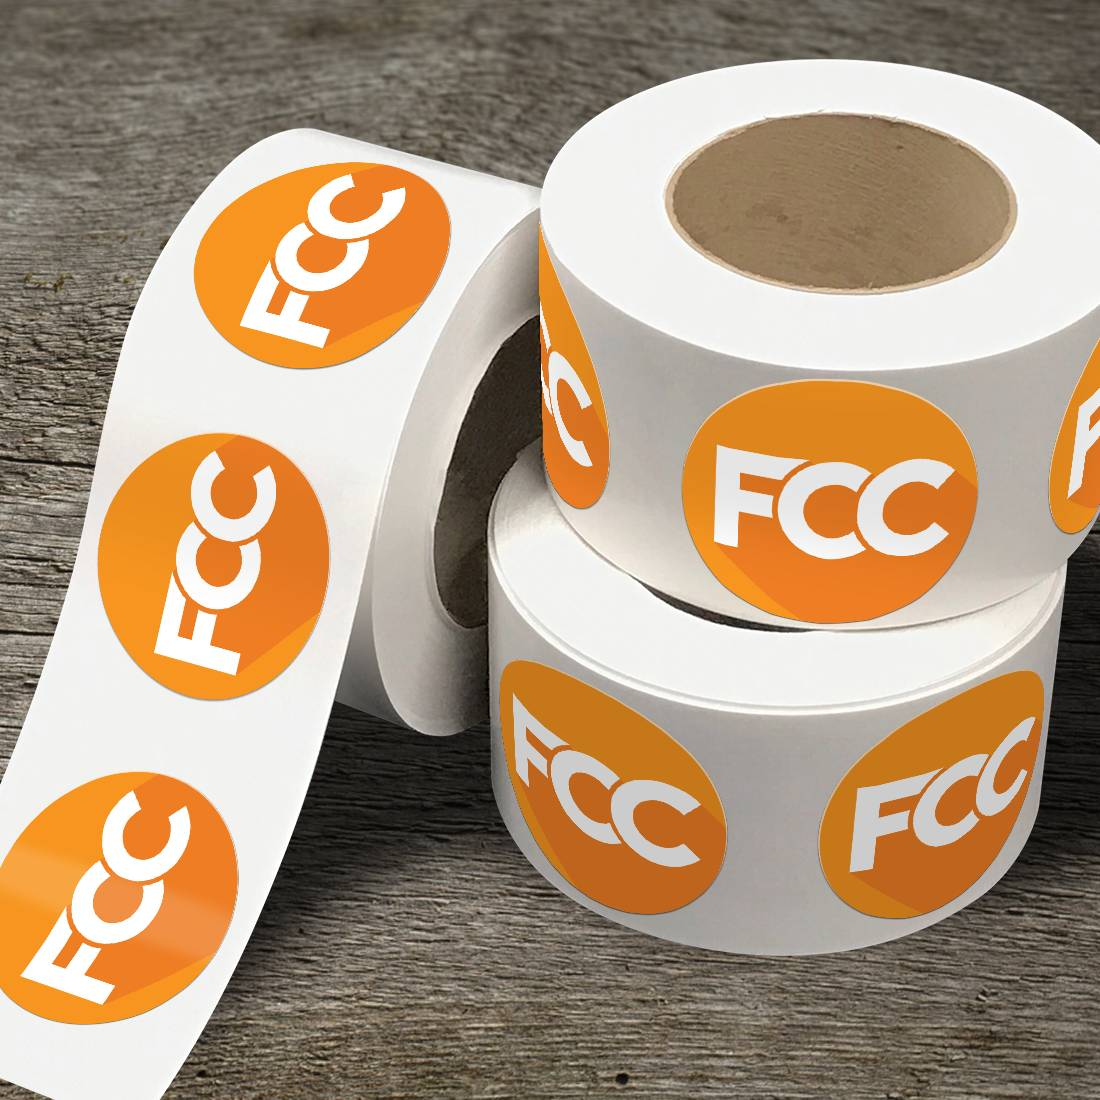 FCC Circle Sticker Rolls